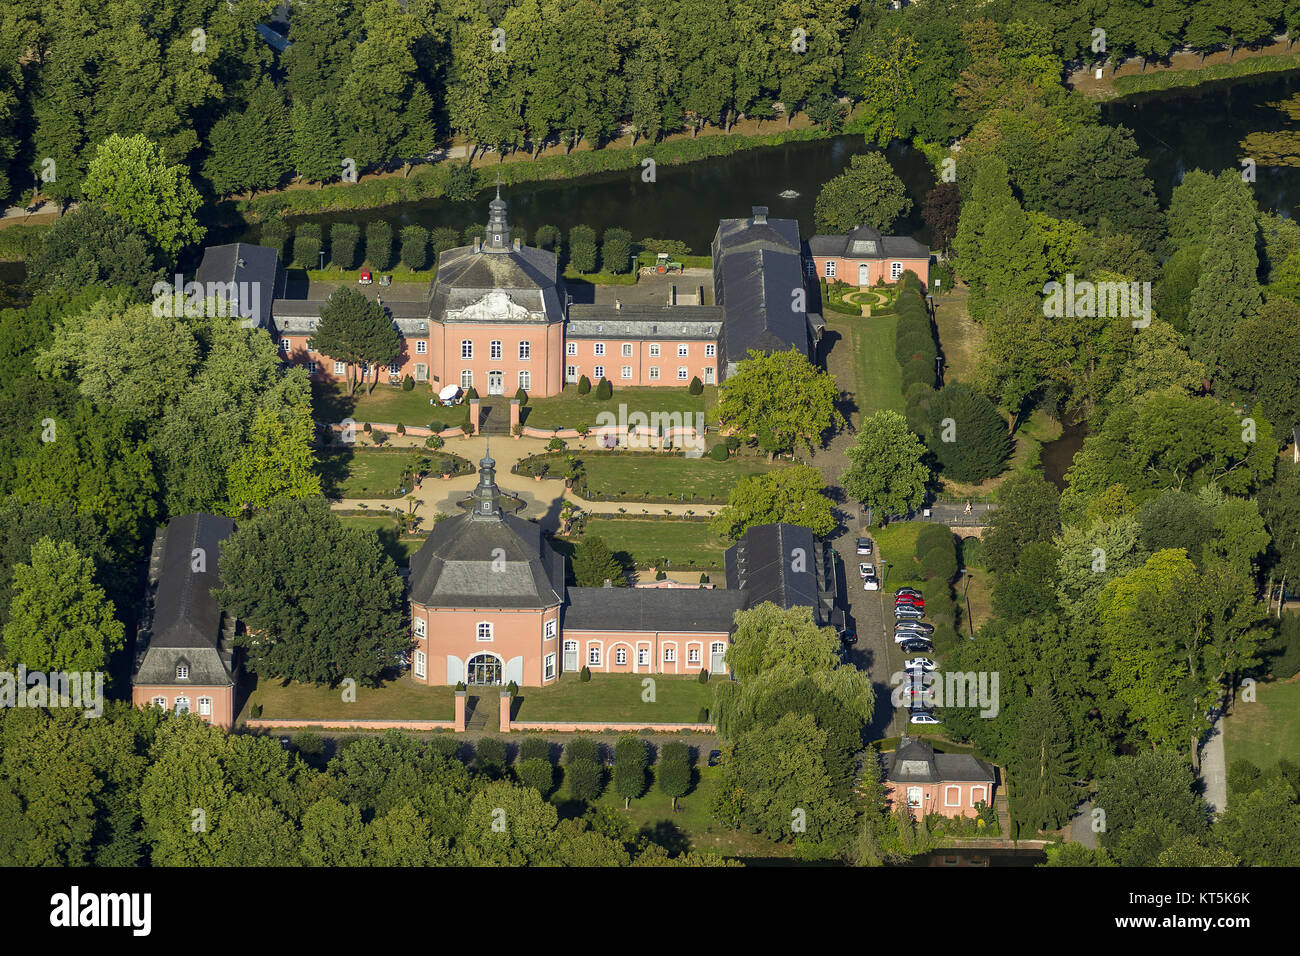 Wickrath Castle, moated castle complex on the Niers, Park, Vorburg, Mönchengladbach, Lower Rhine, North Rhine-Westphalia, Stock Photo